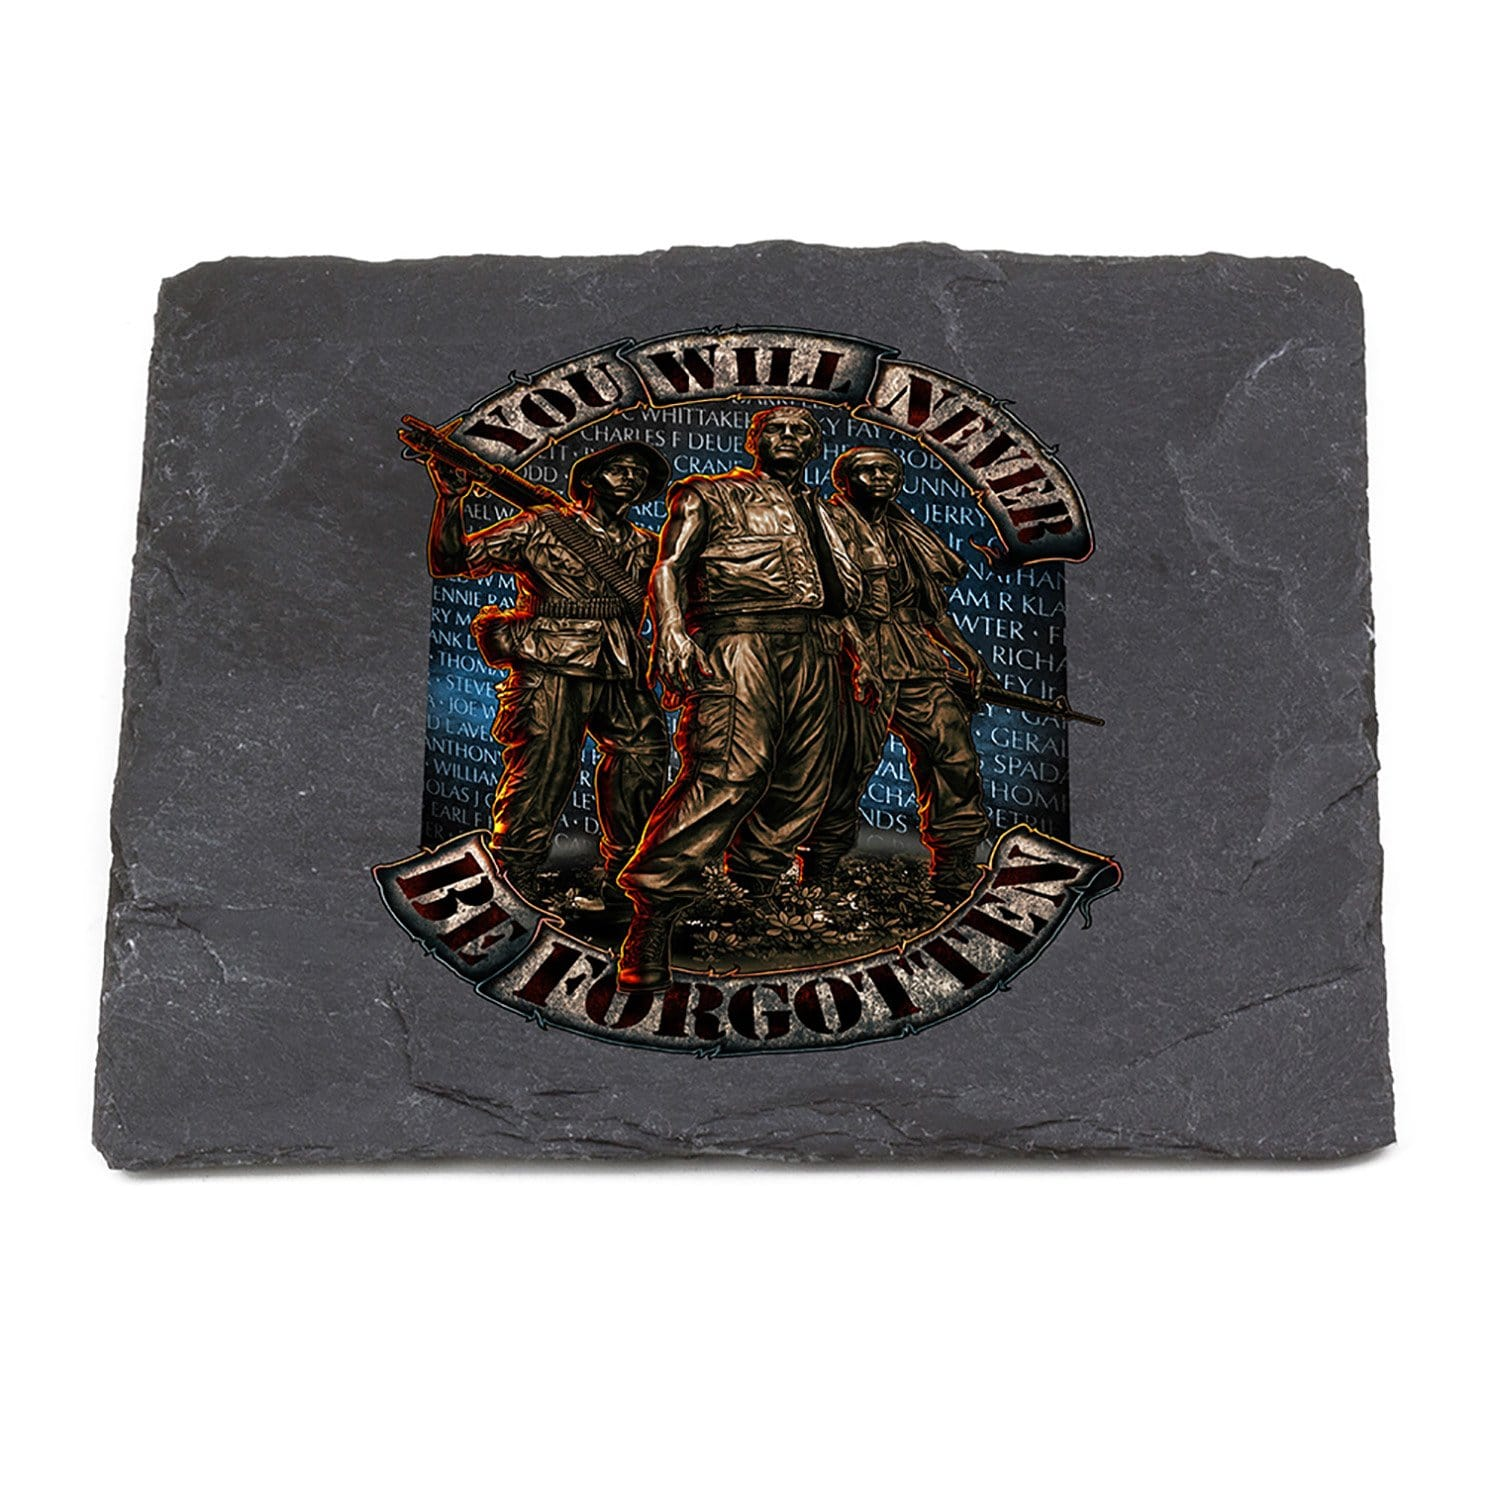 Vietnam Soldier Never Forget Coaster Black